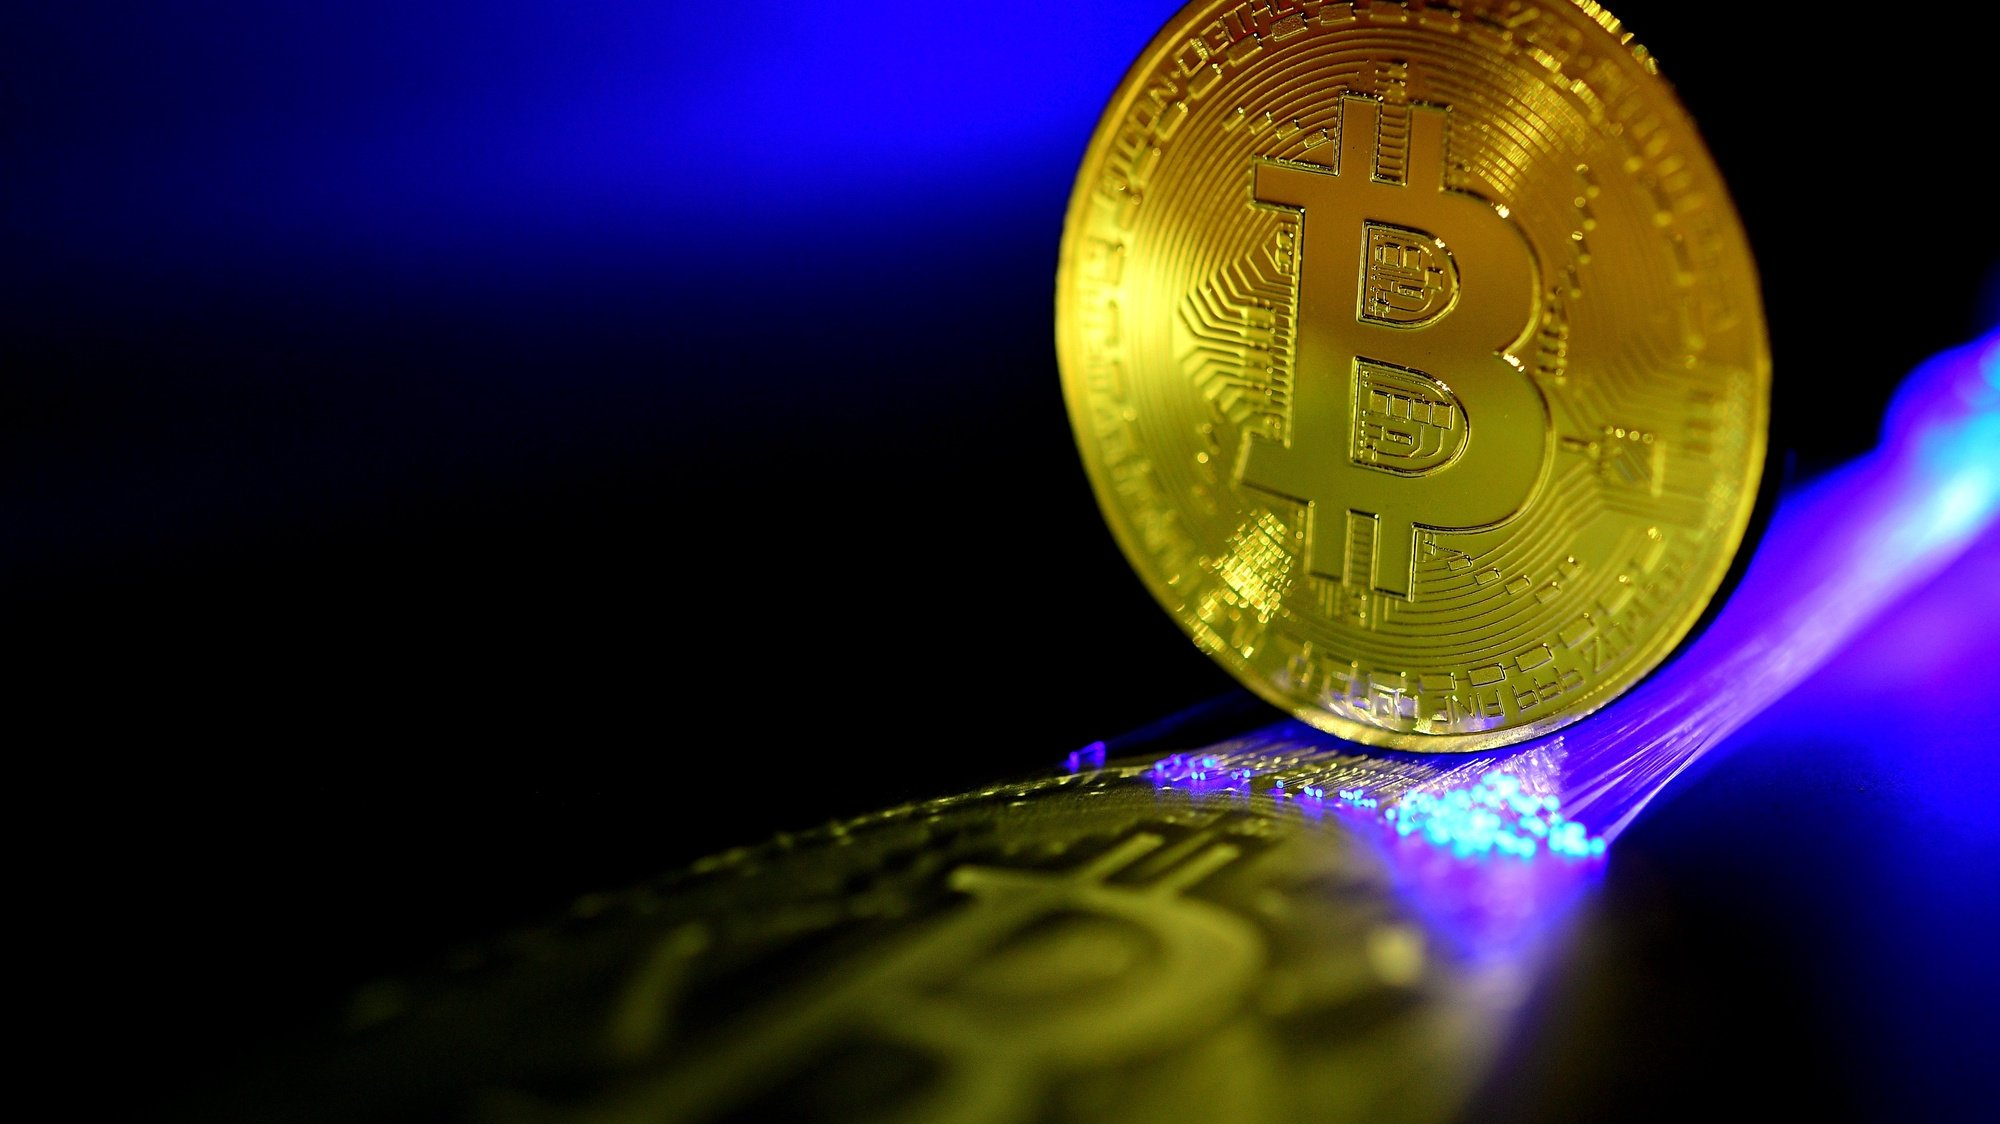 epa06407080 A Bitcoin is pictured in Duesseldorf, Germany, 27 December 2017. Wild swings in the price of bitcoin took a pause, after it temporarily dropped to 10,800 US dollar. The cryptocurrency's value plummeted by nearly a third last week, and was dealt another potential blow when the Israeli Securities Agency said it would bar companies trading in bitcoin from operating on the Tel Aviv stock exchange and investigate how to regulate the digital currency because of concerns about volatile prices.  EPA/SASCHA STEINBACH